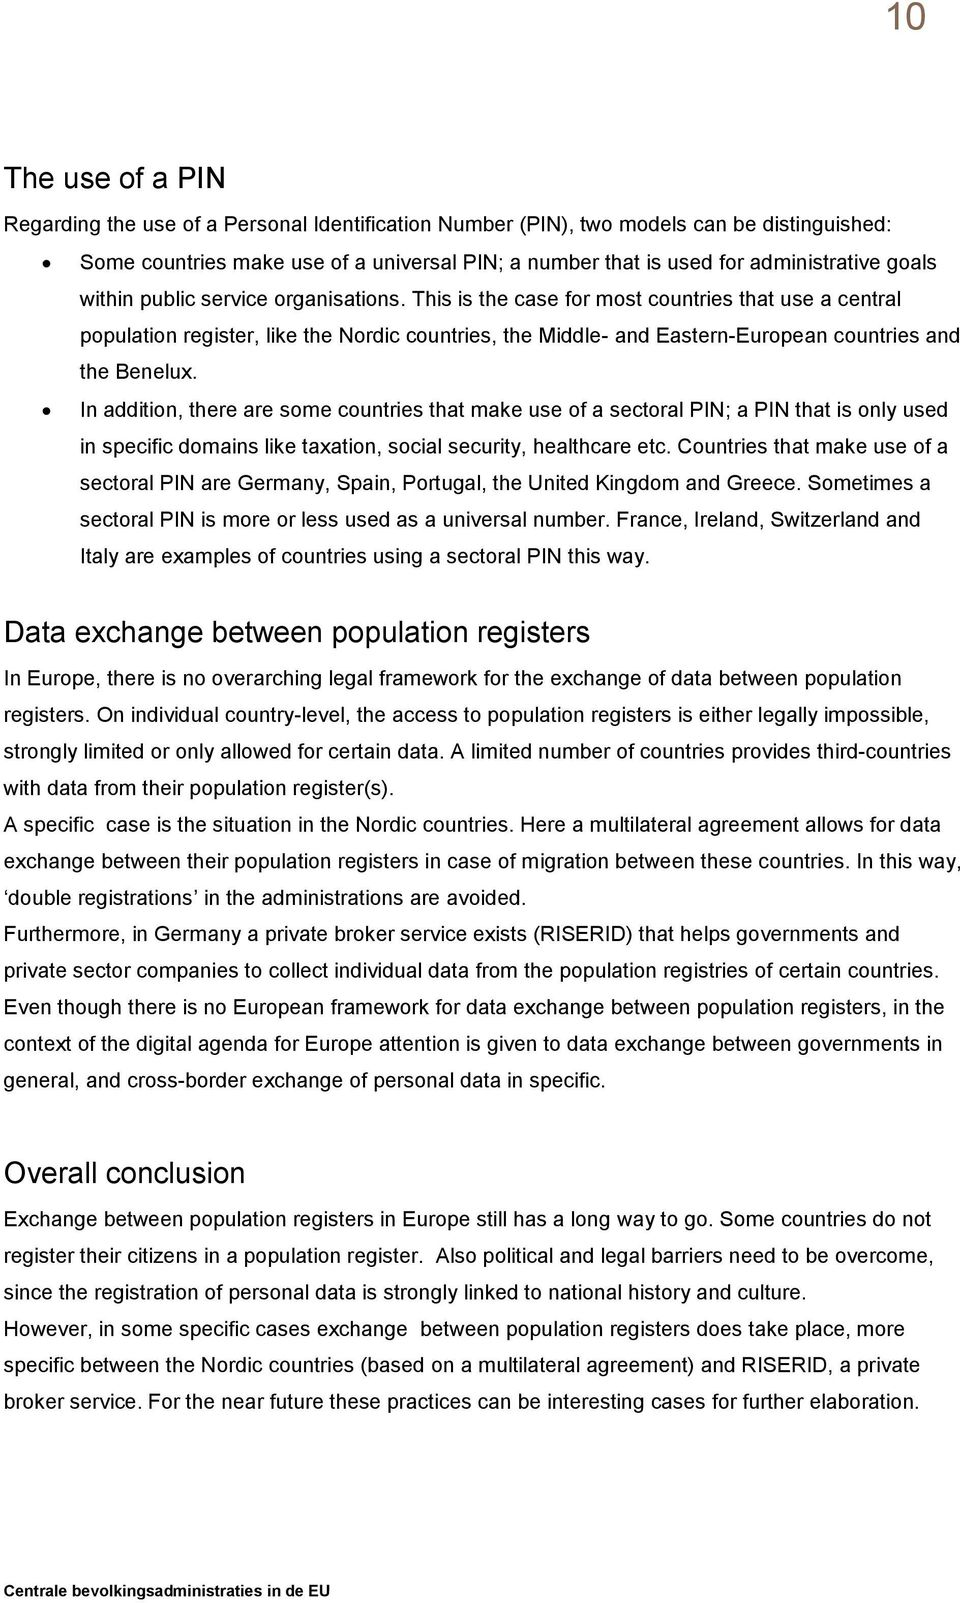 This is the case for most countries that use a central population register, like the Nordic countries, the Middle- and Eastern-European countries and the Benelux.